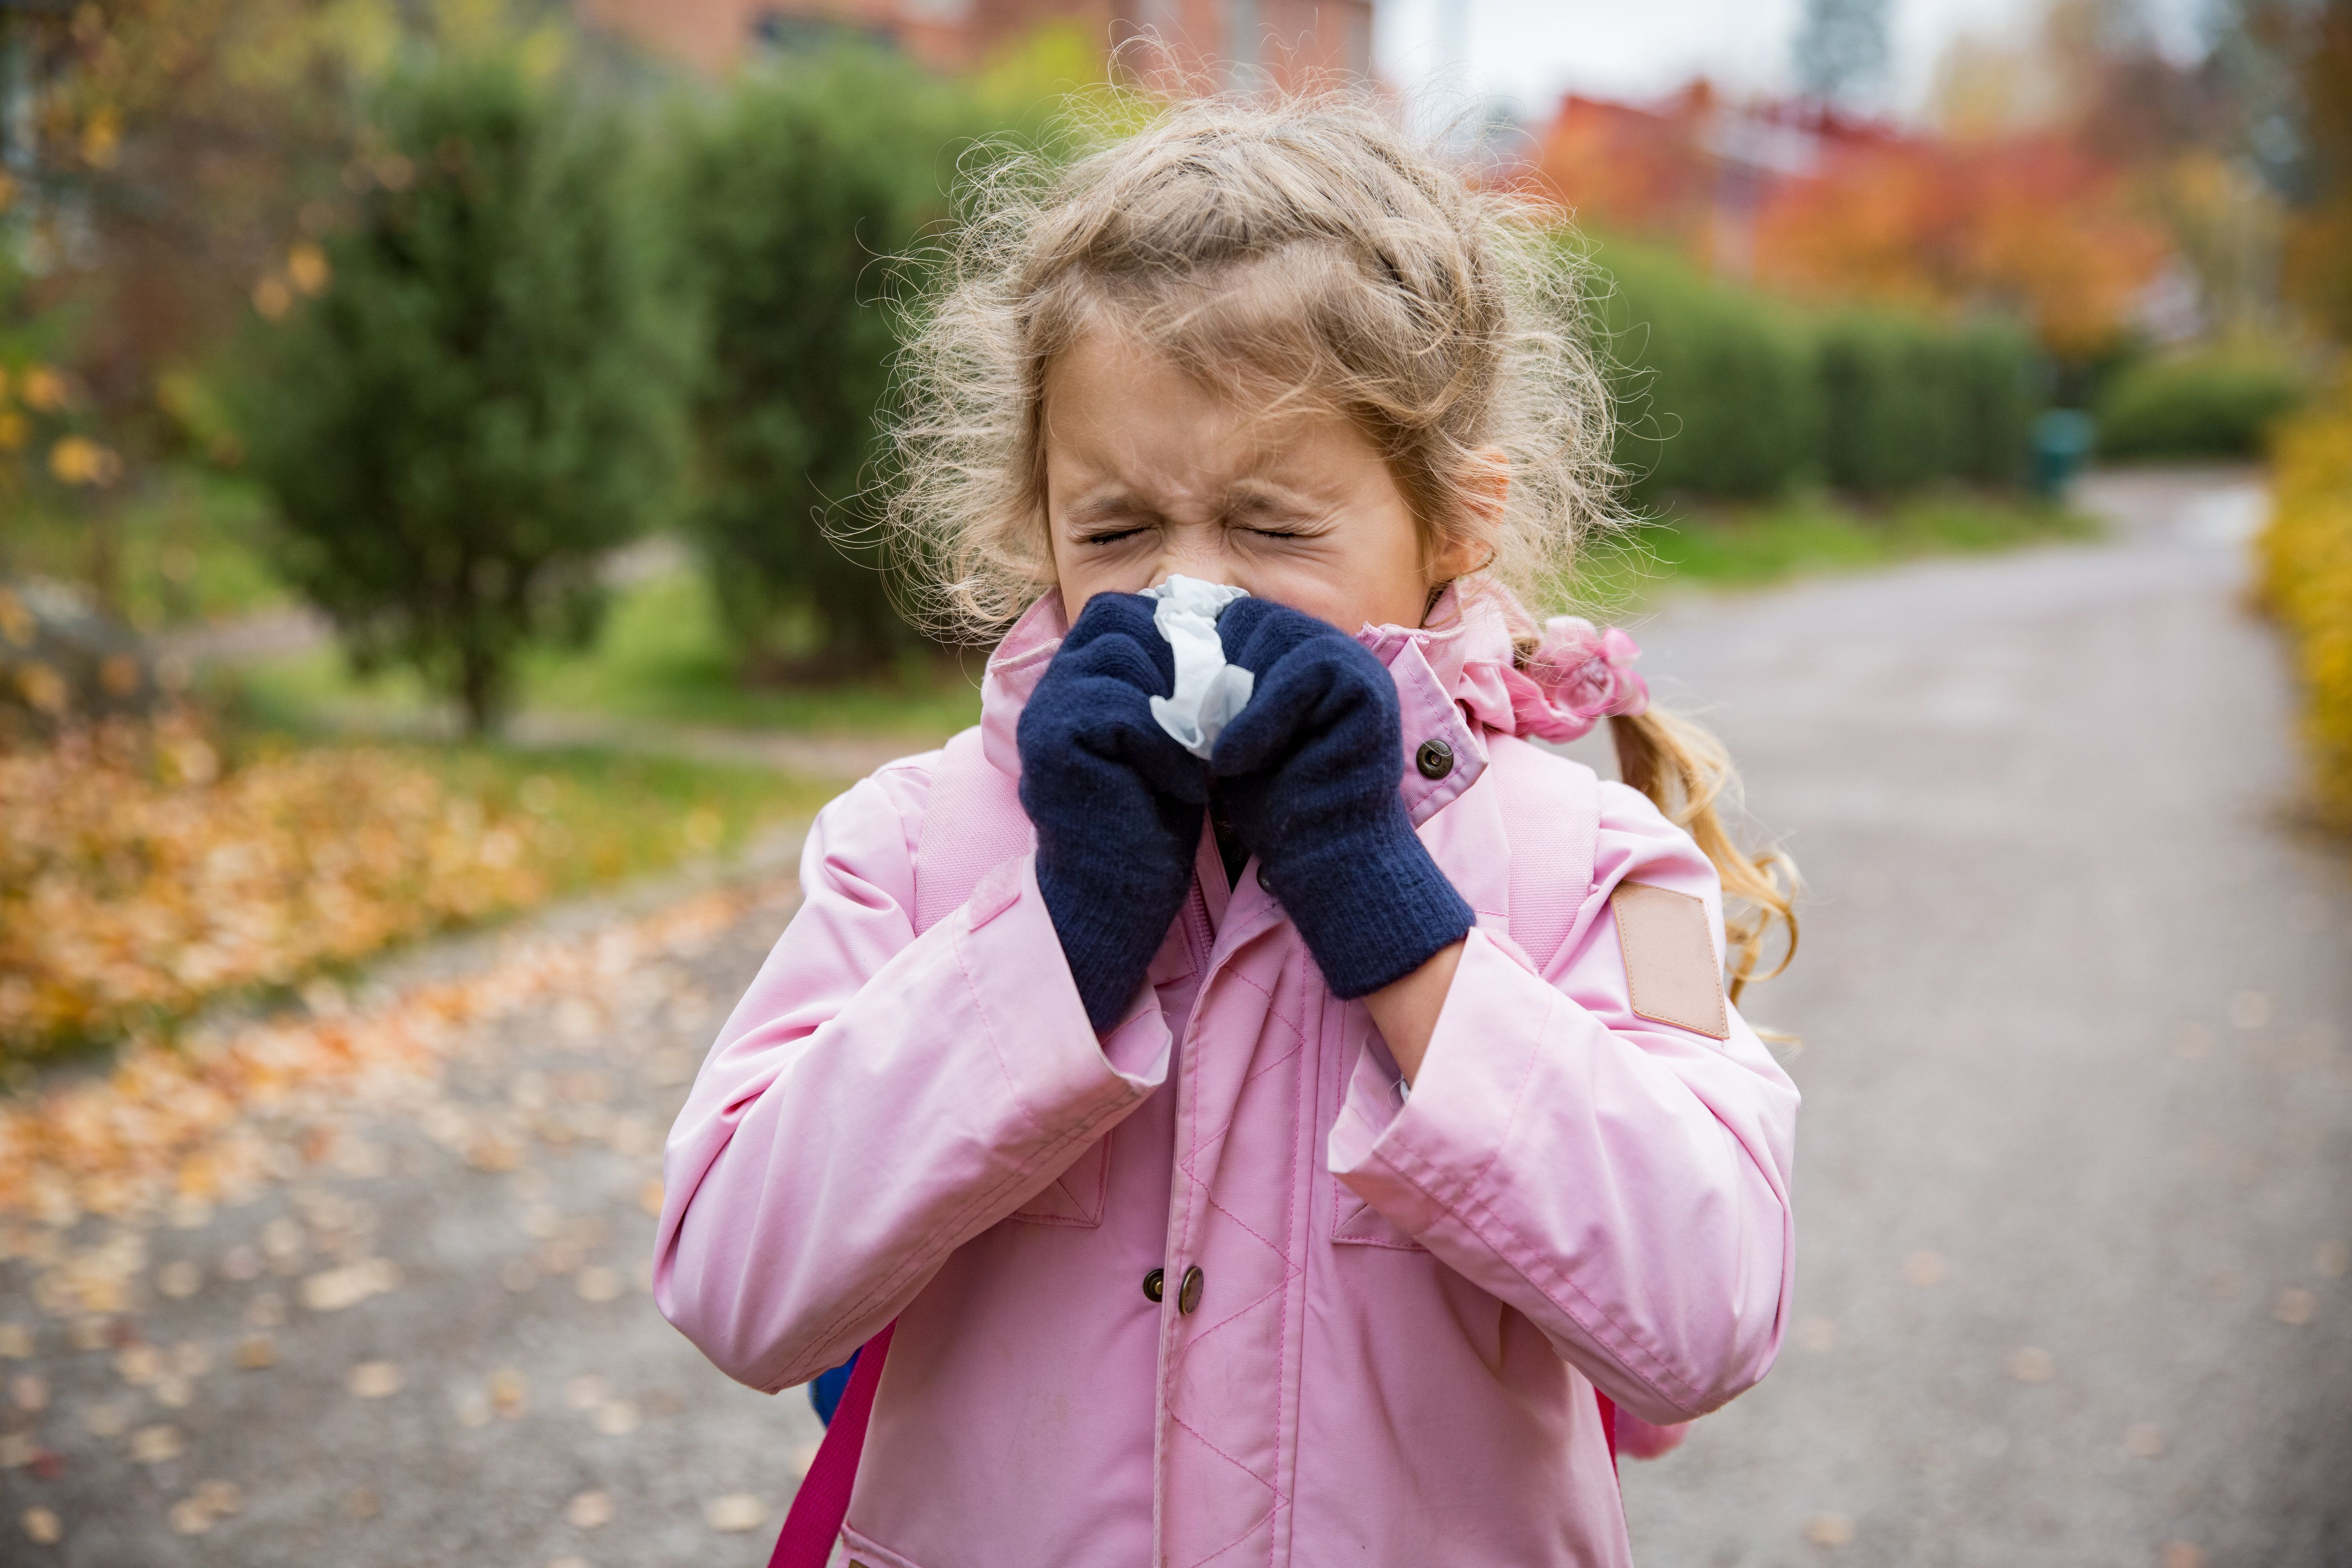 Sick little girl with cold and flu standing outdoors. Preschooler sneezing, wiping nose with handkerchief, coughing, having runny red nose. Autumn street background